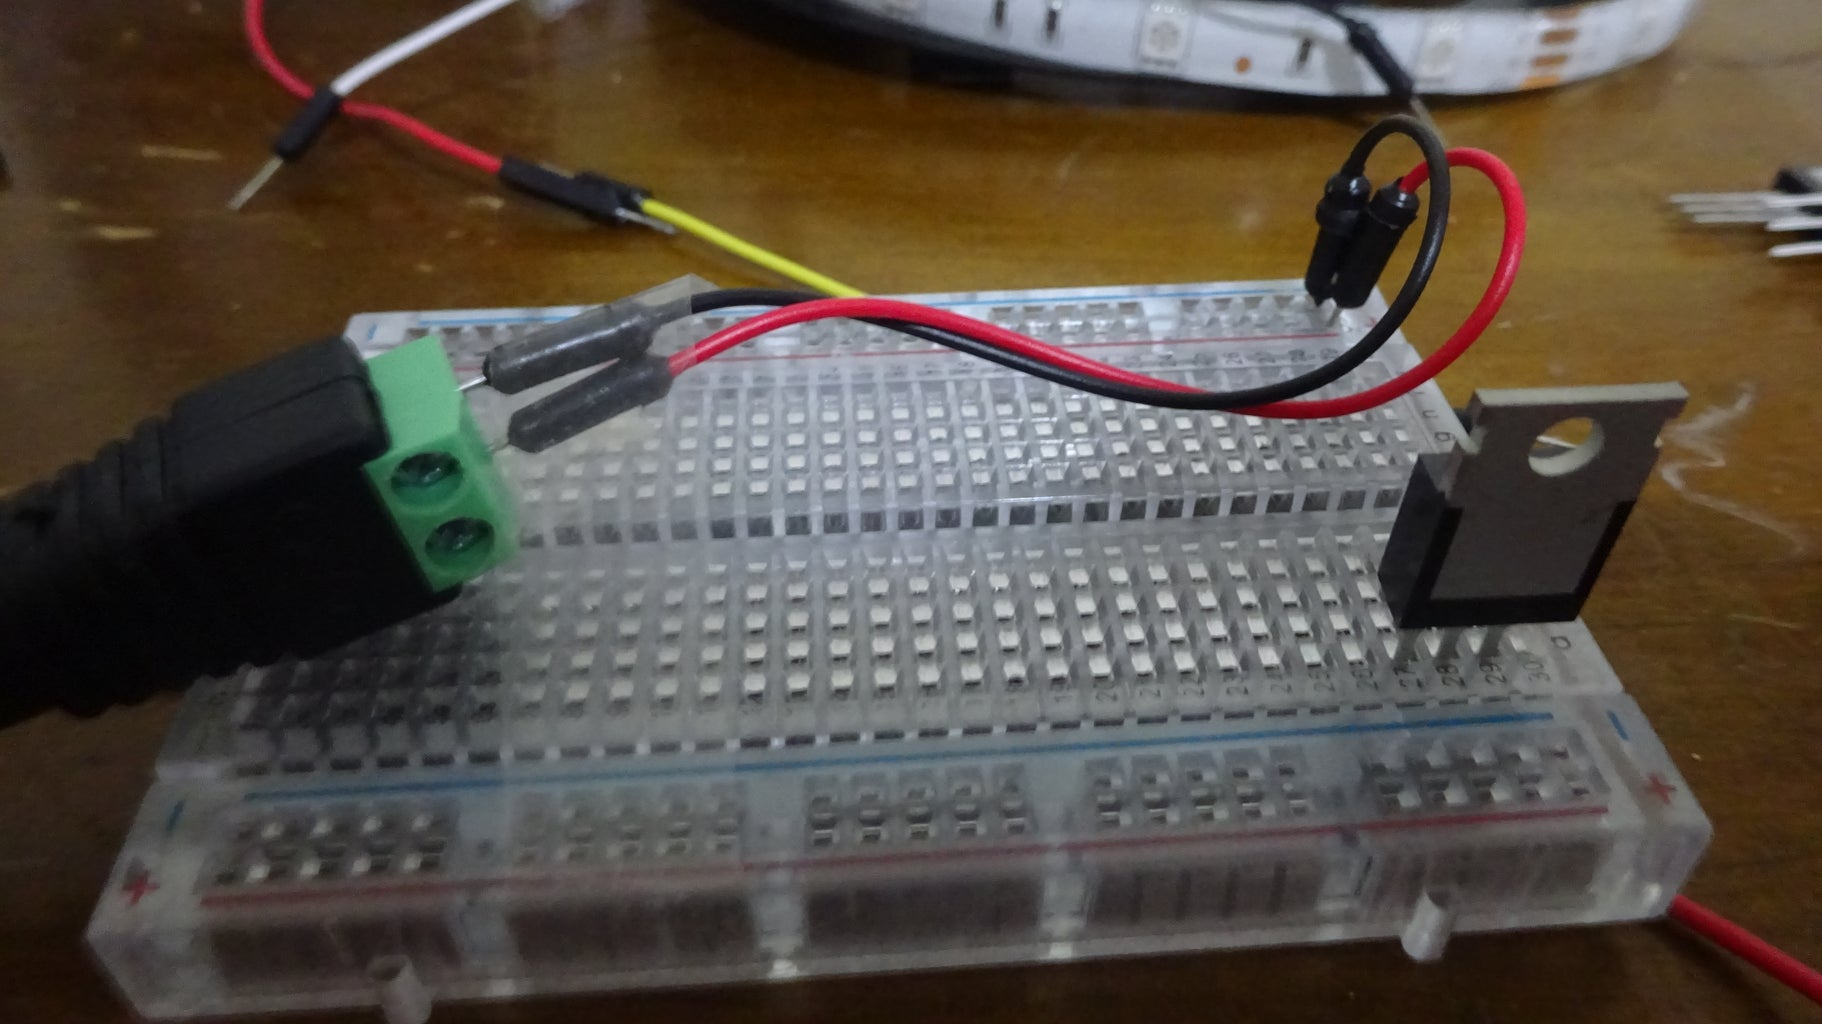 Wiring Up the Mosfets and Connecting the Pi